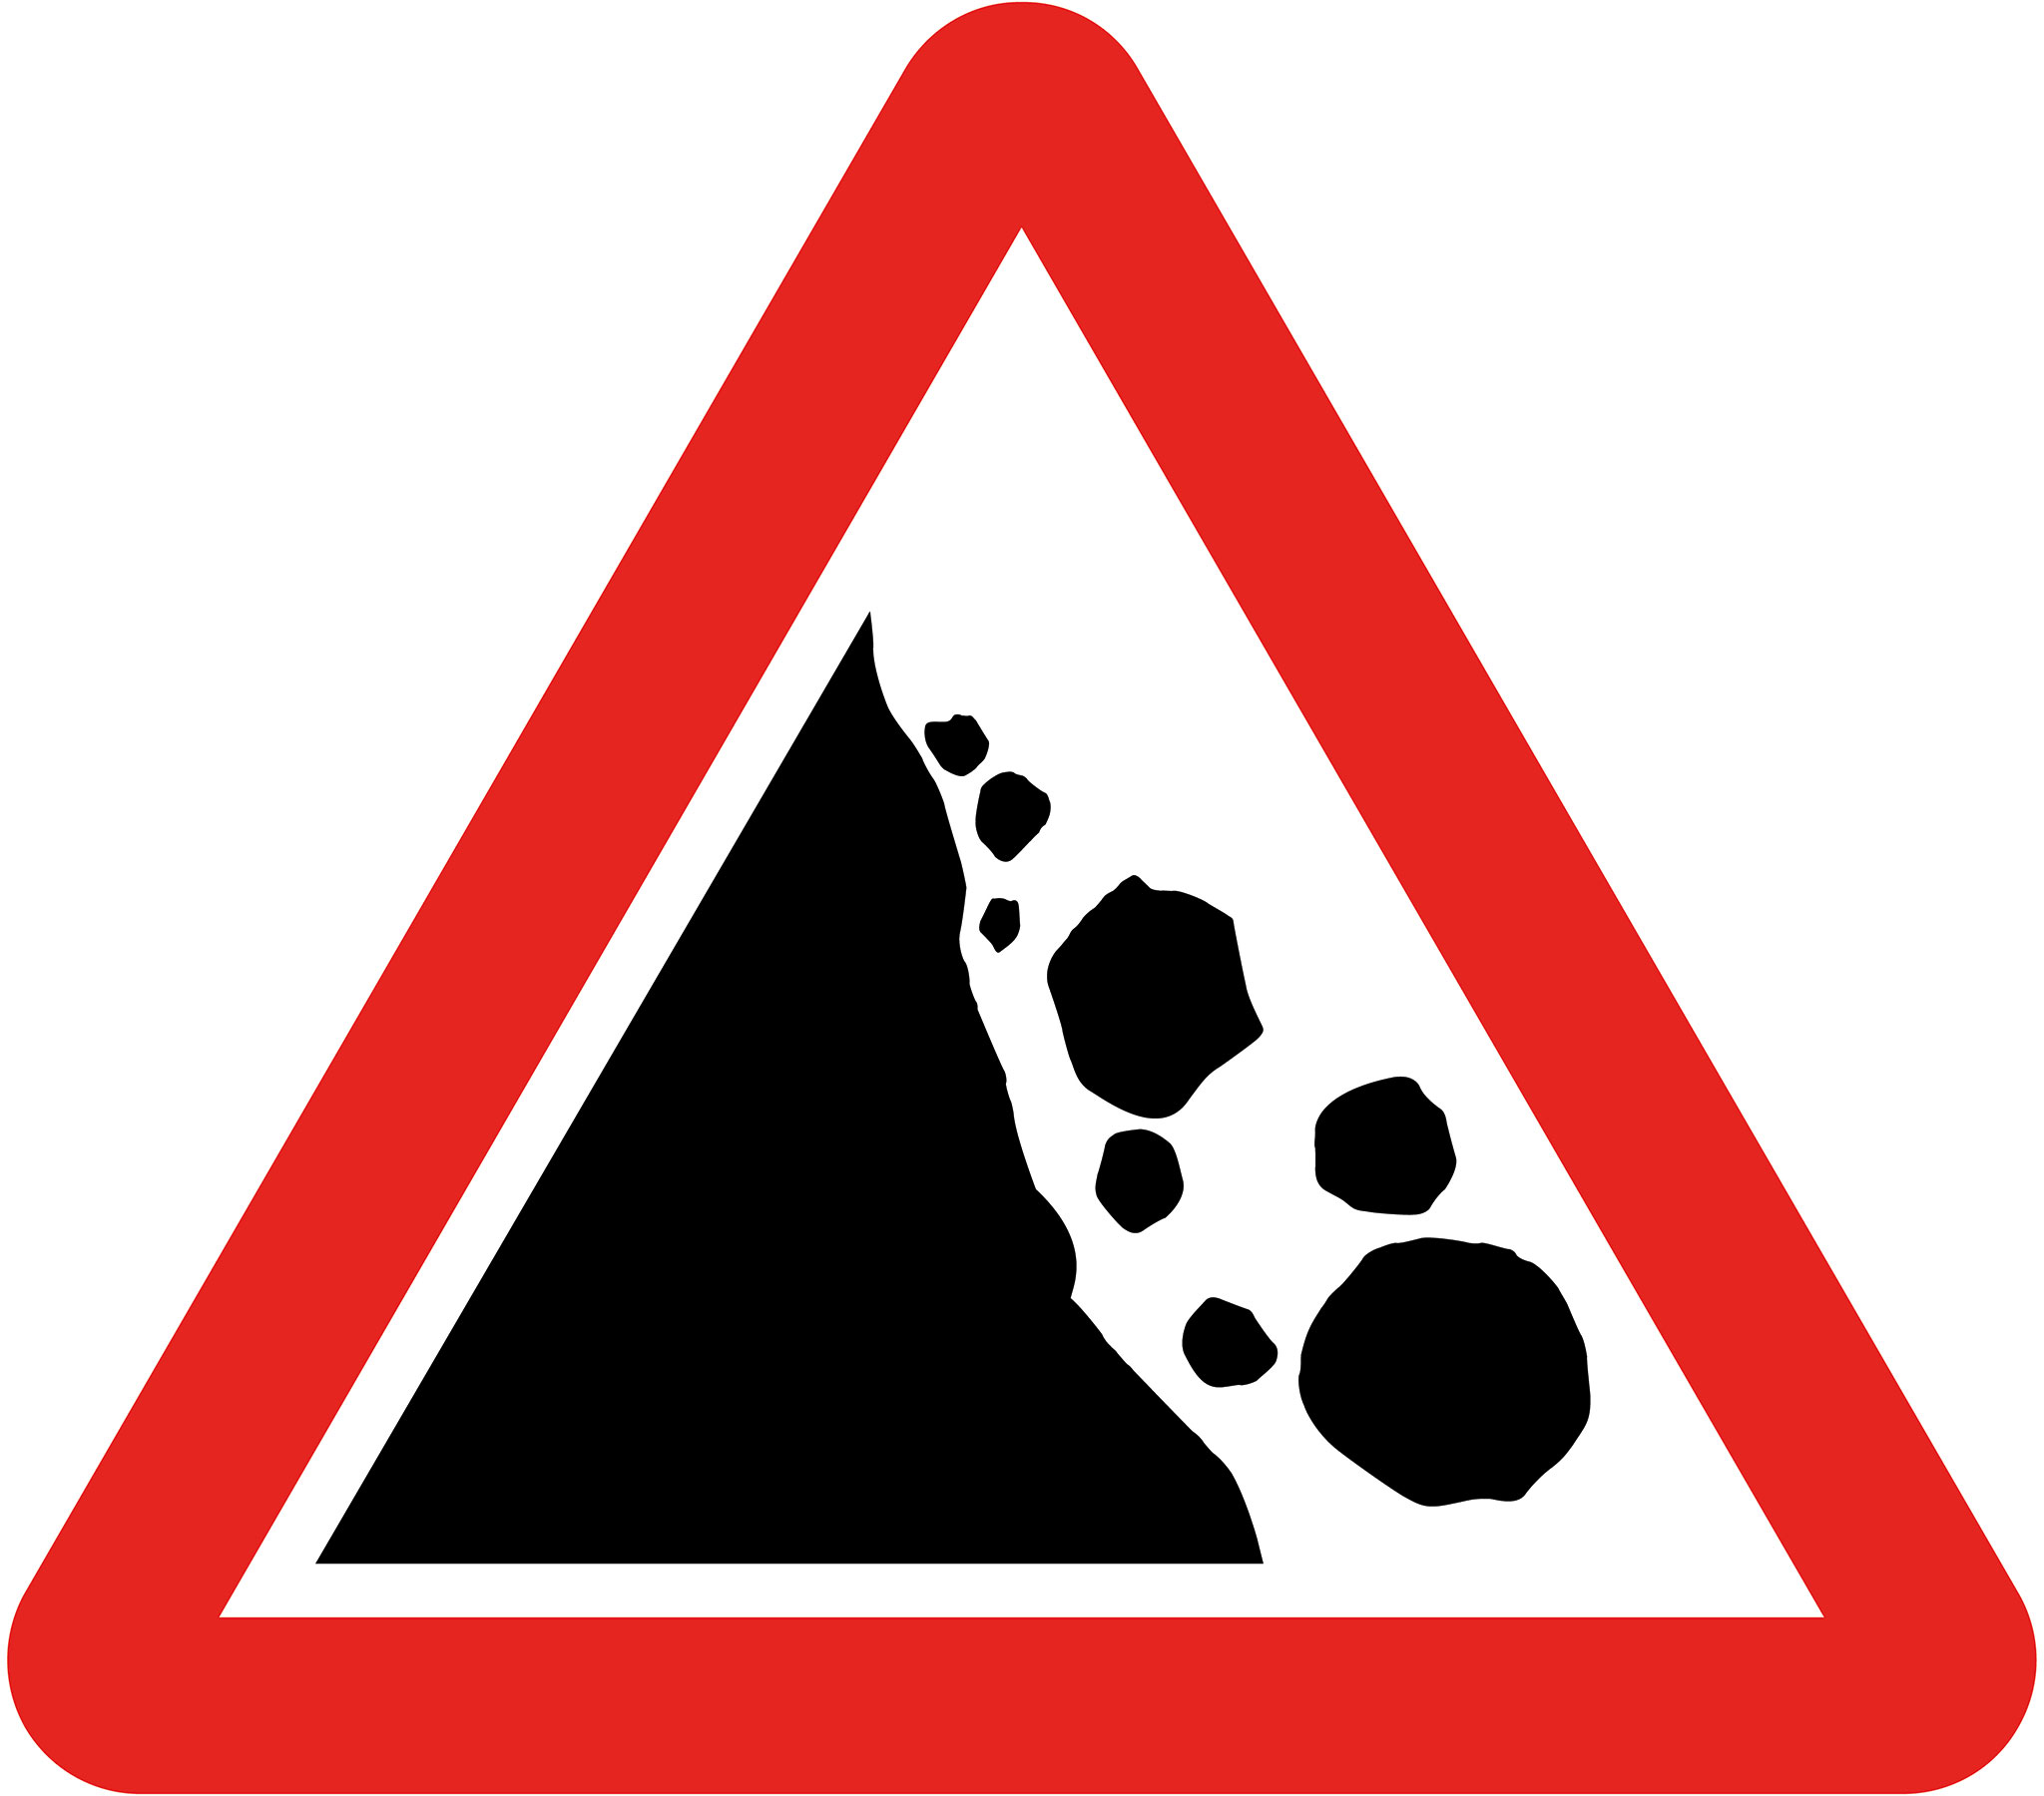 Road signs: Why Britain's designs rule | The Independent